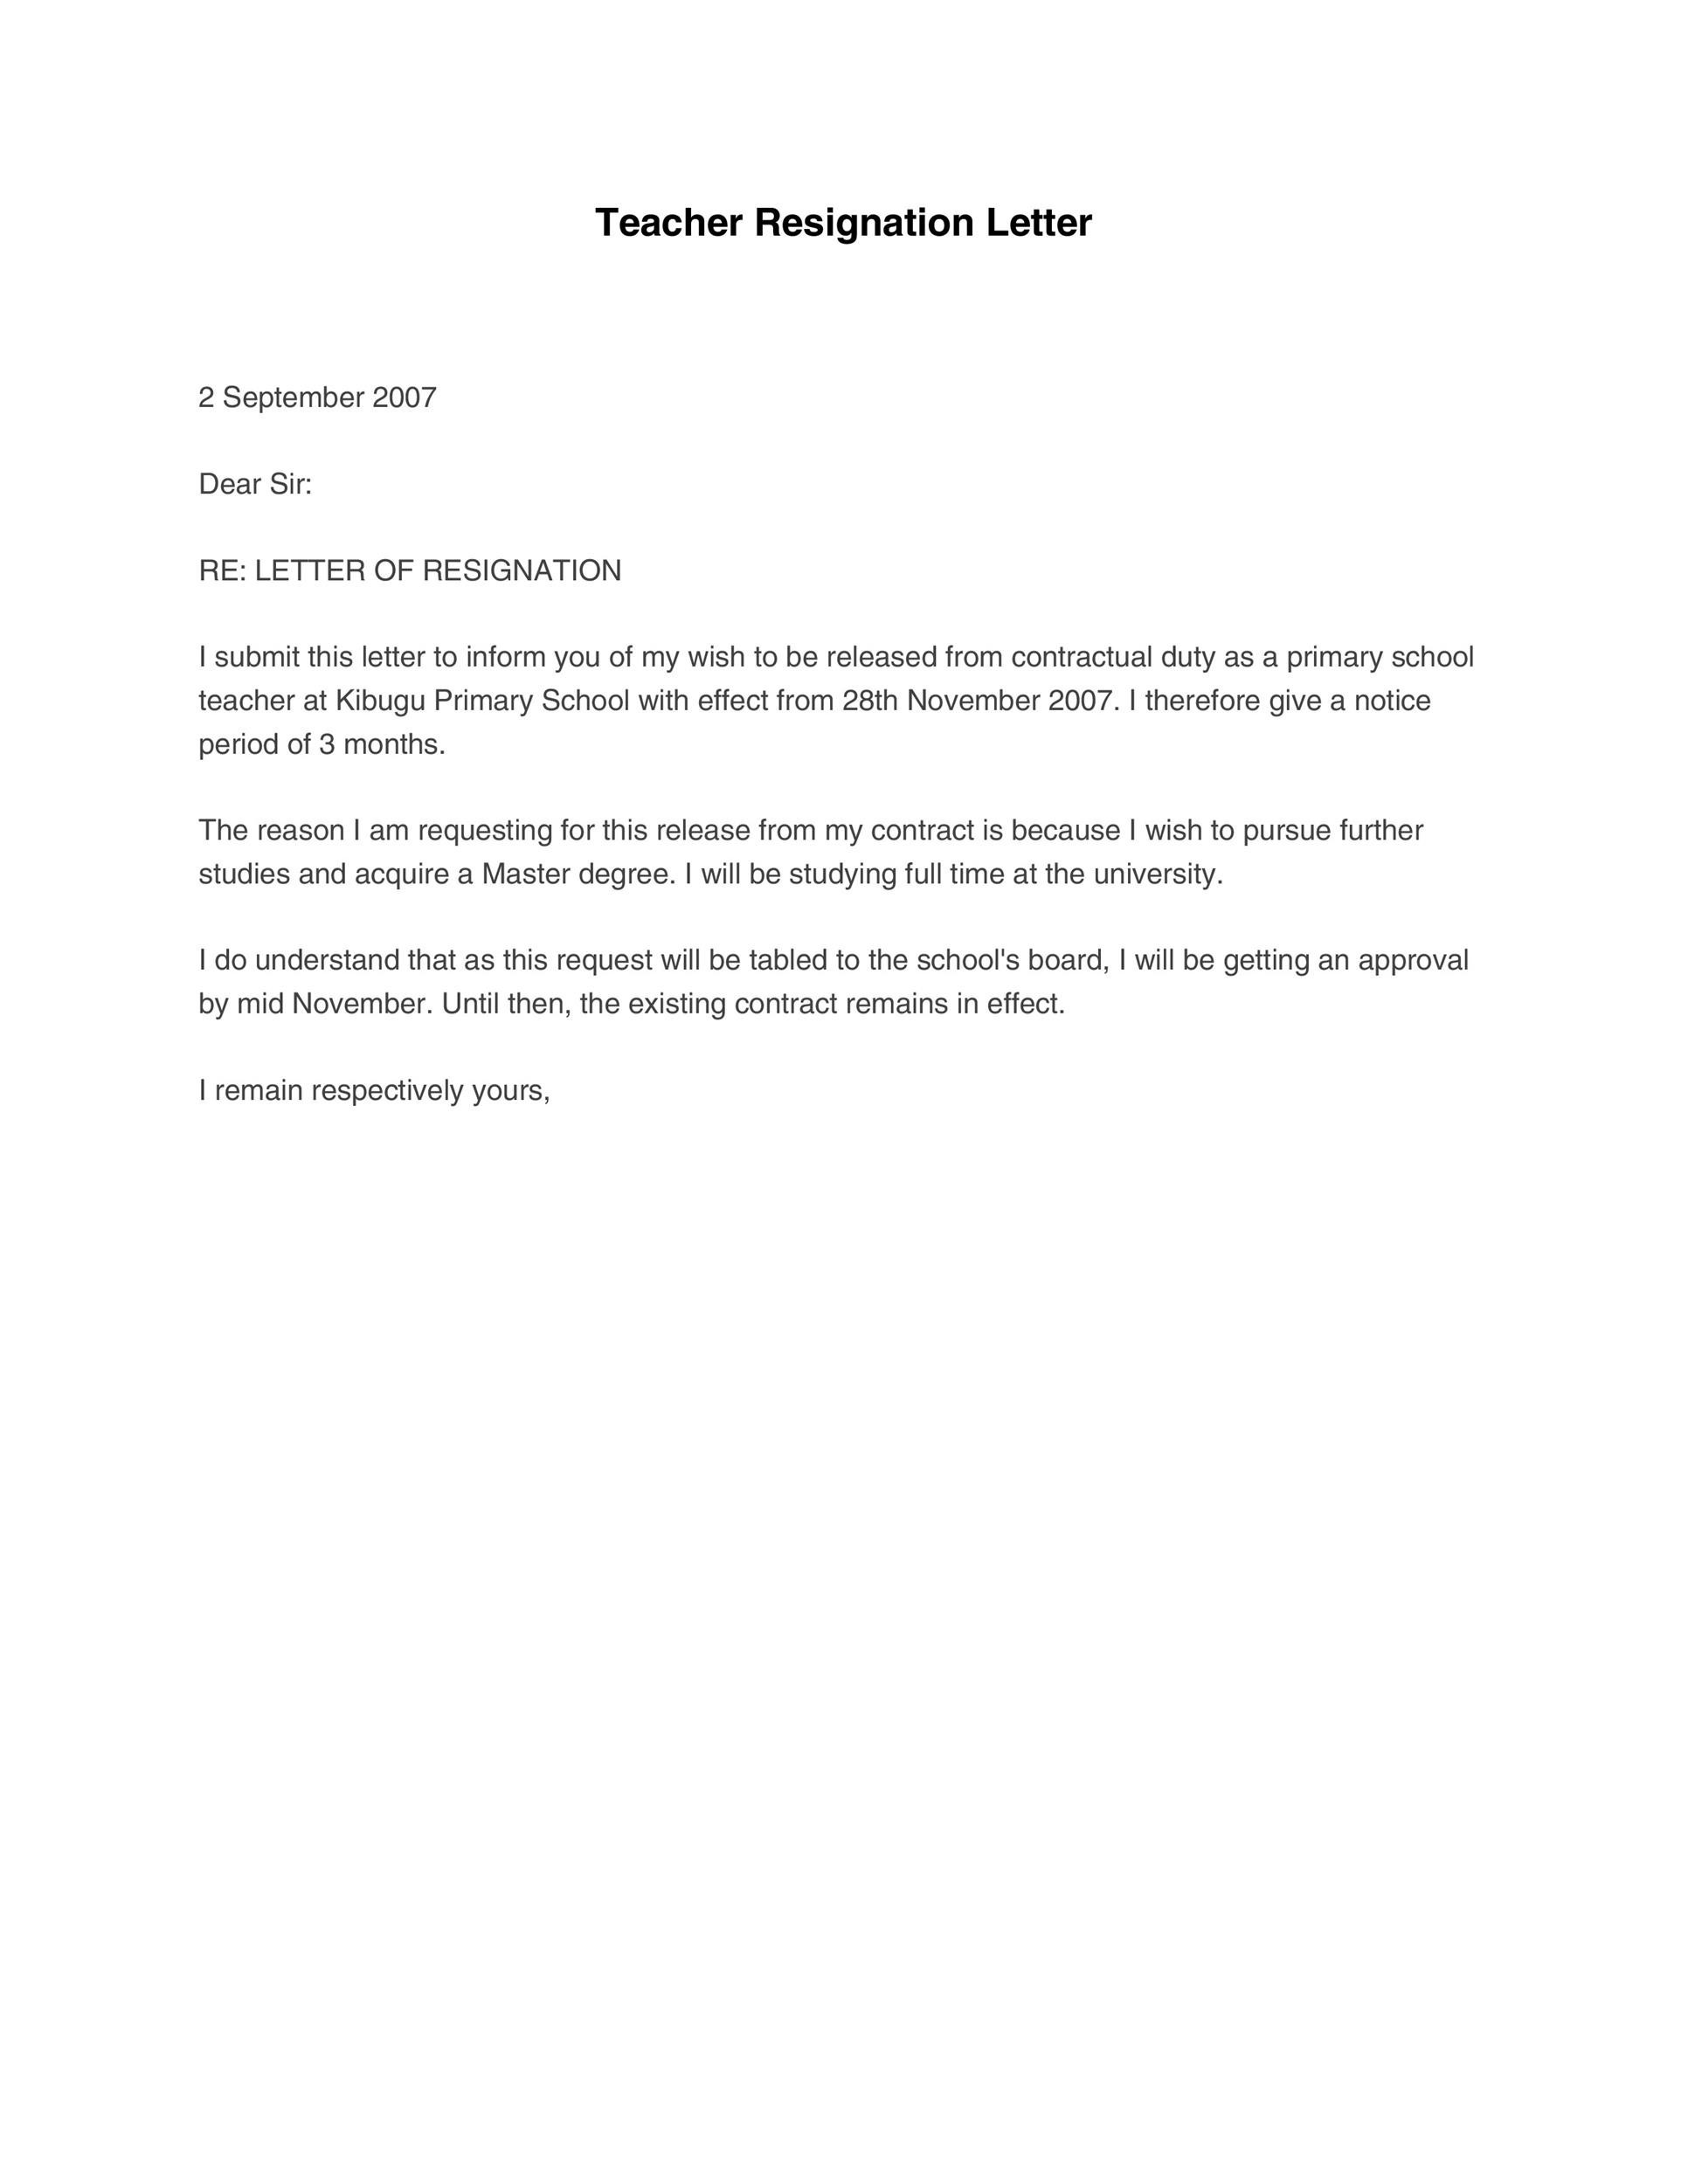 Letter Of Resignation Template Teacher from templatelab.com